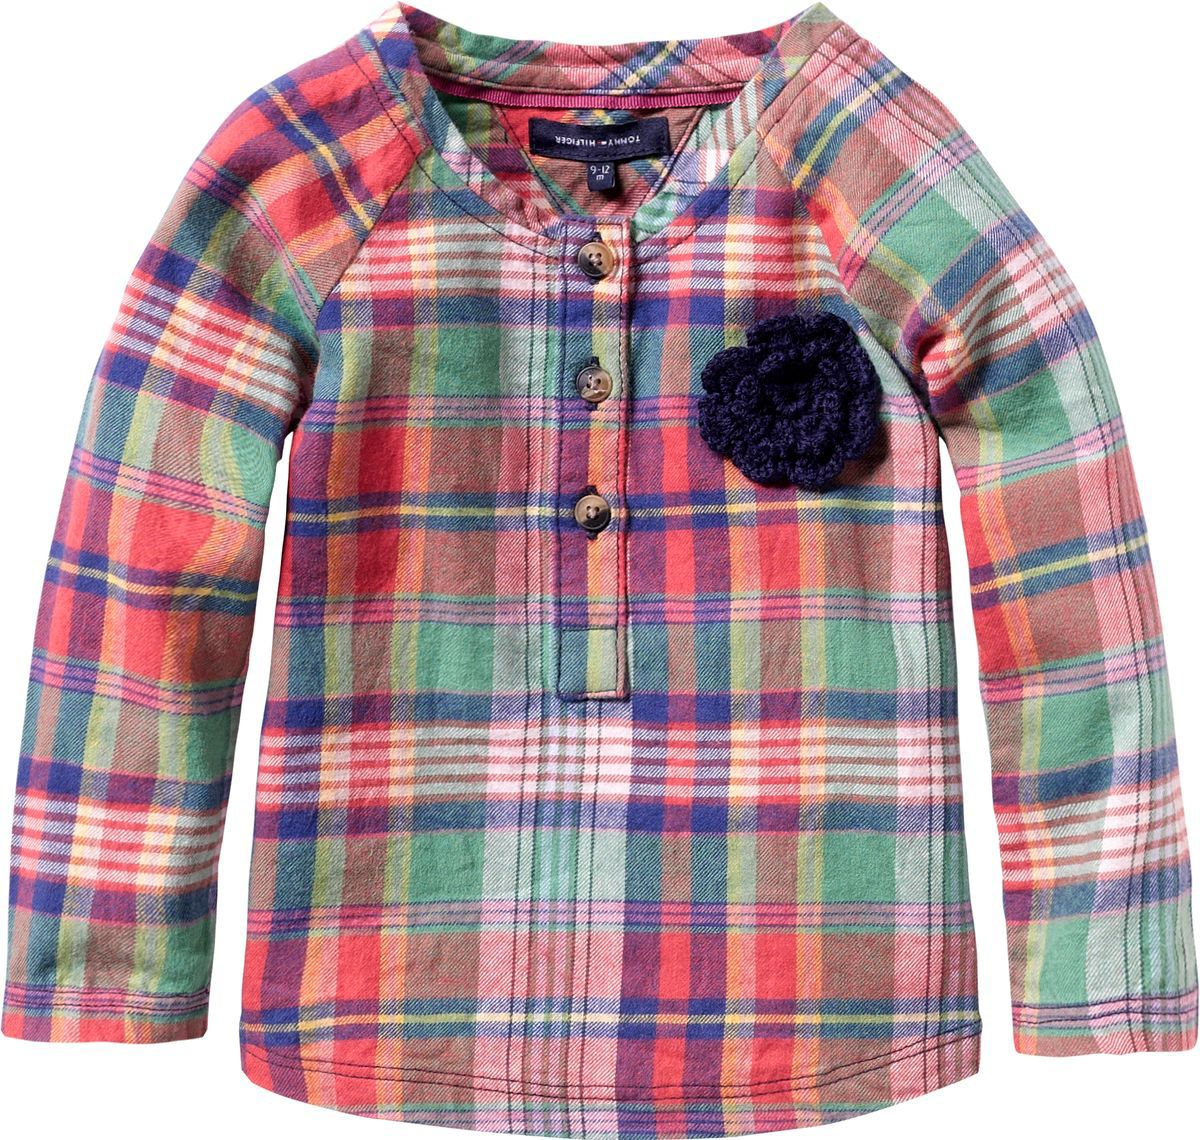 Toddler girl`s shirt